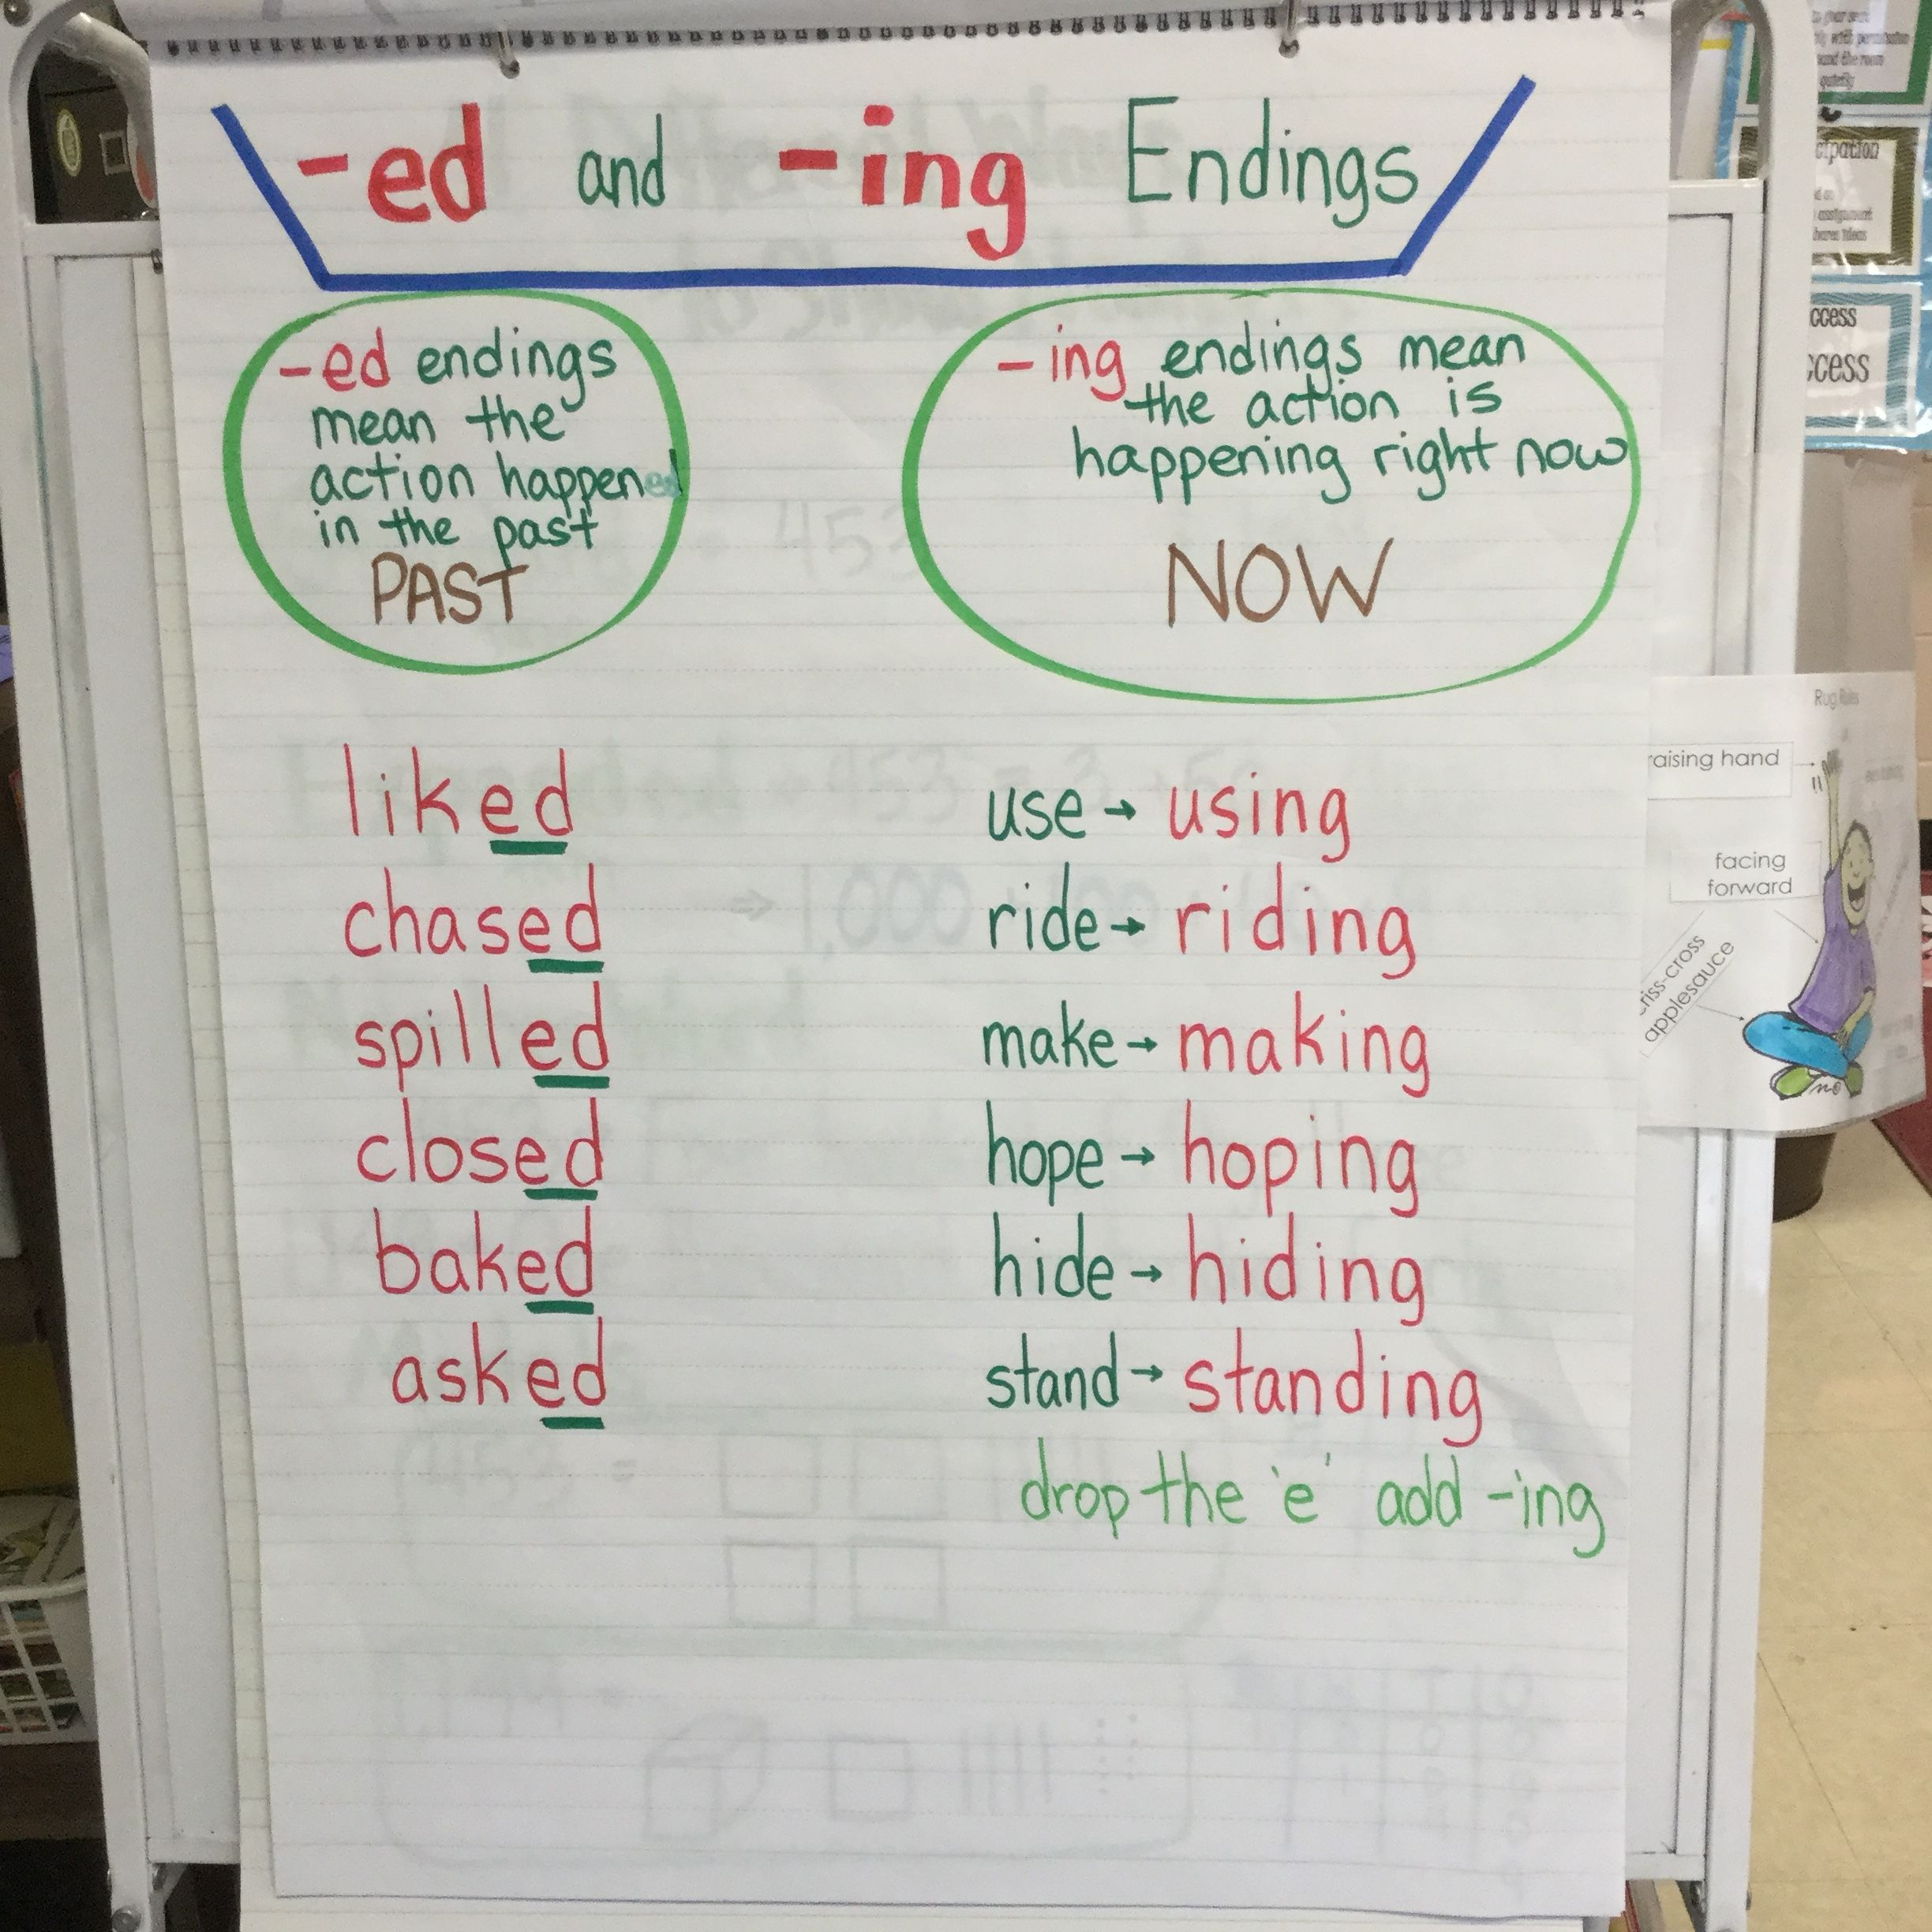 hight resolution of ed and -ing endings Drop the e and add -ing   Inflectional endings